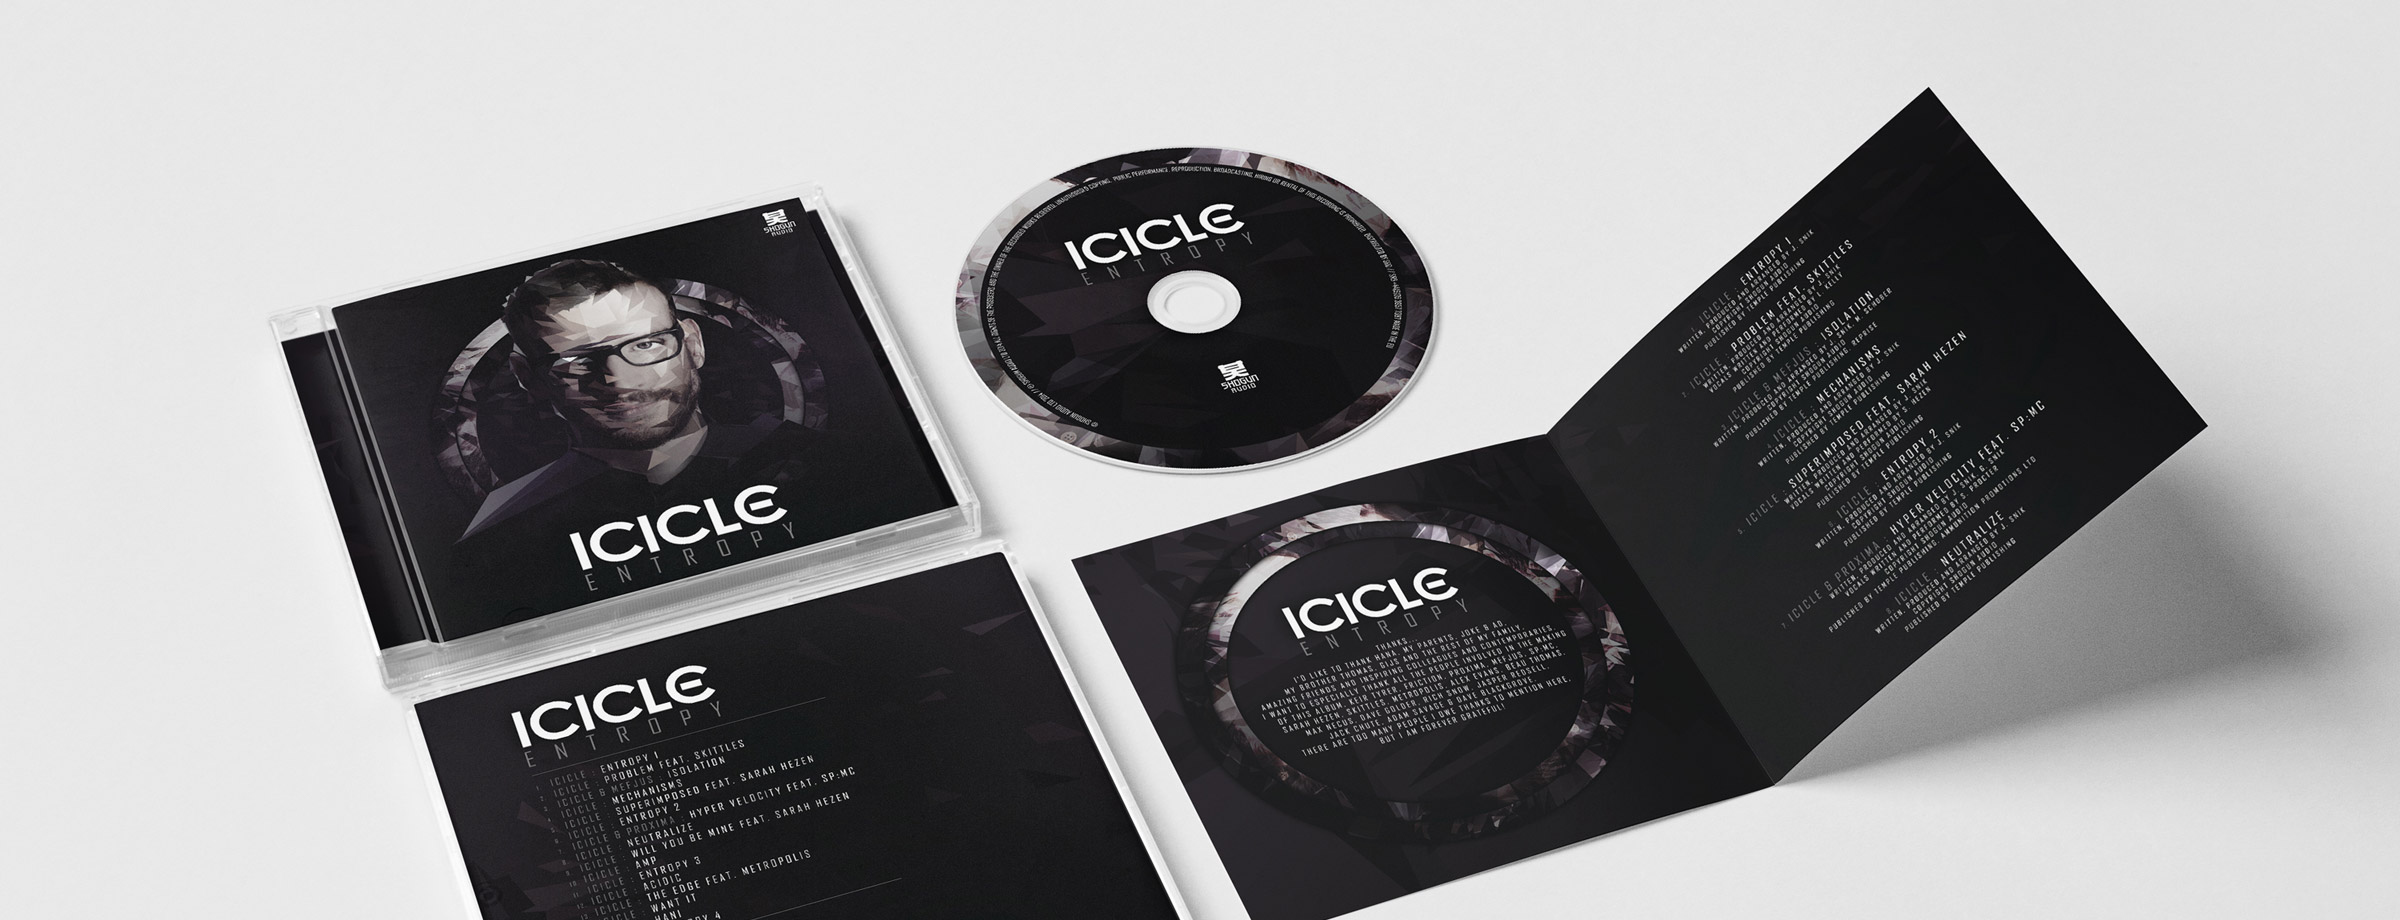 Icicle2 Design Agency For Music 10 Shogun Sp